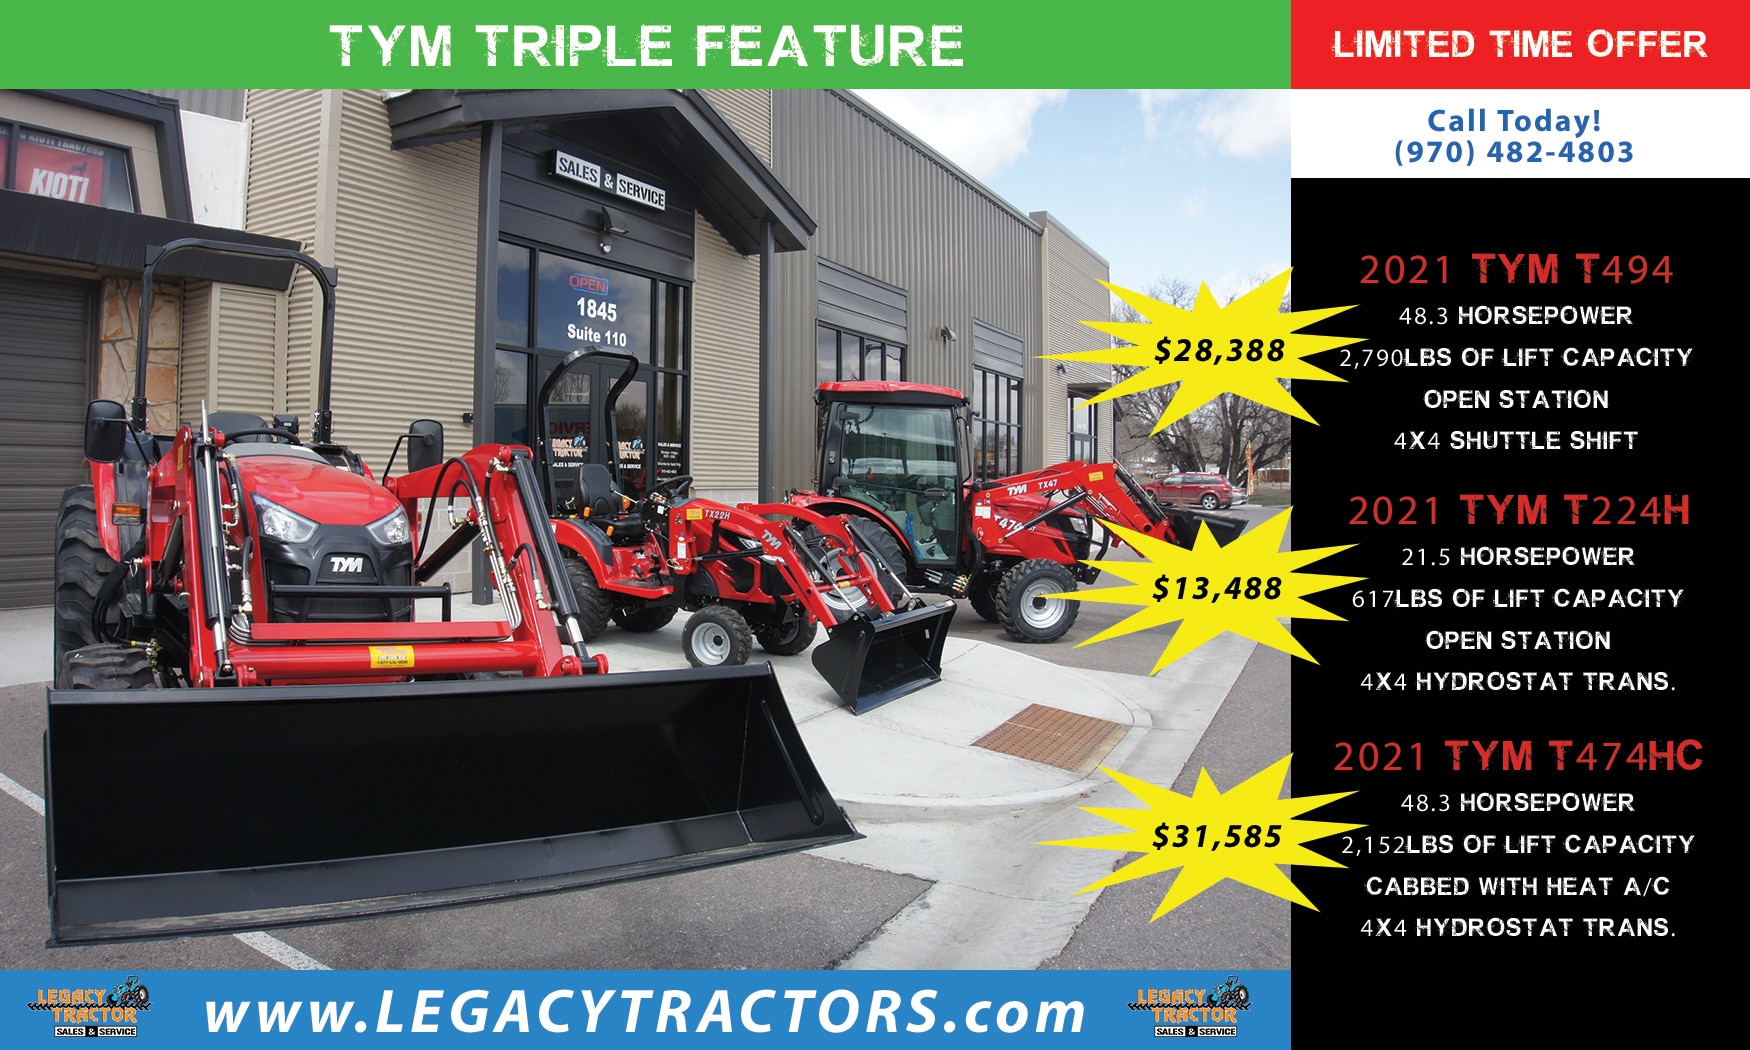 TYM-Triple-Feature-with-Prices